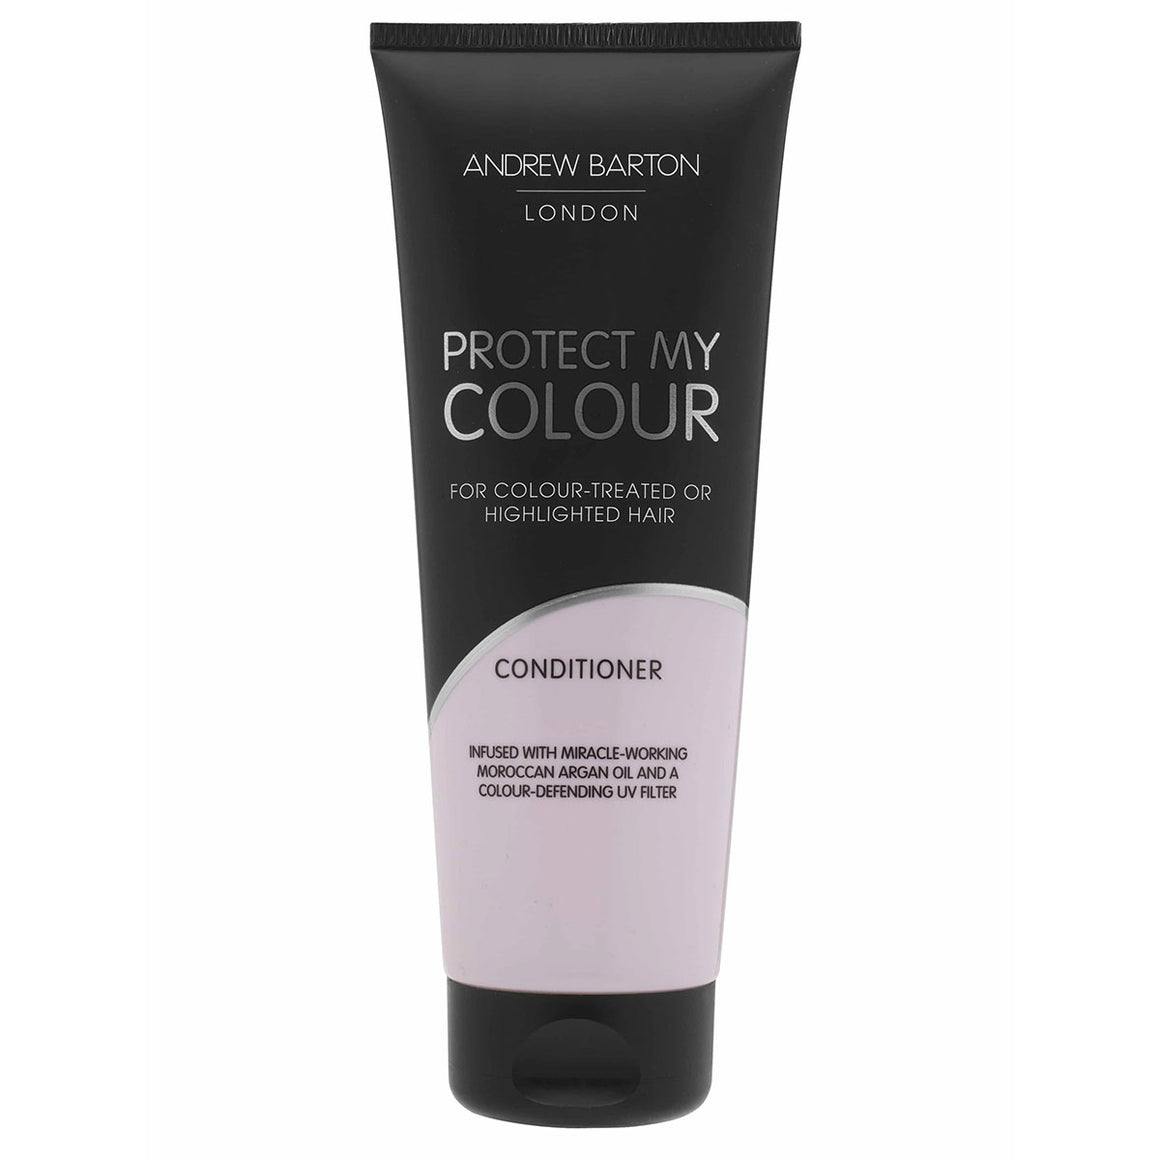 Andrew Barton Protect My Colour Conditioner-250ml at BD Budget Beauty (BBB)